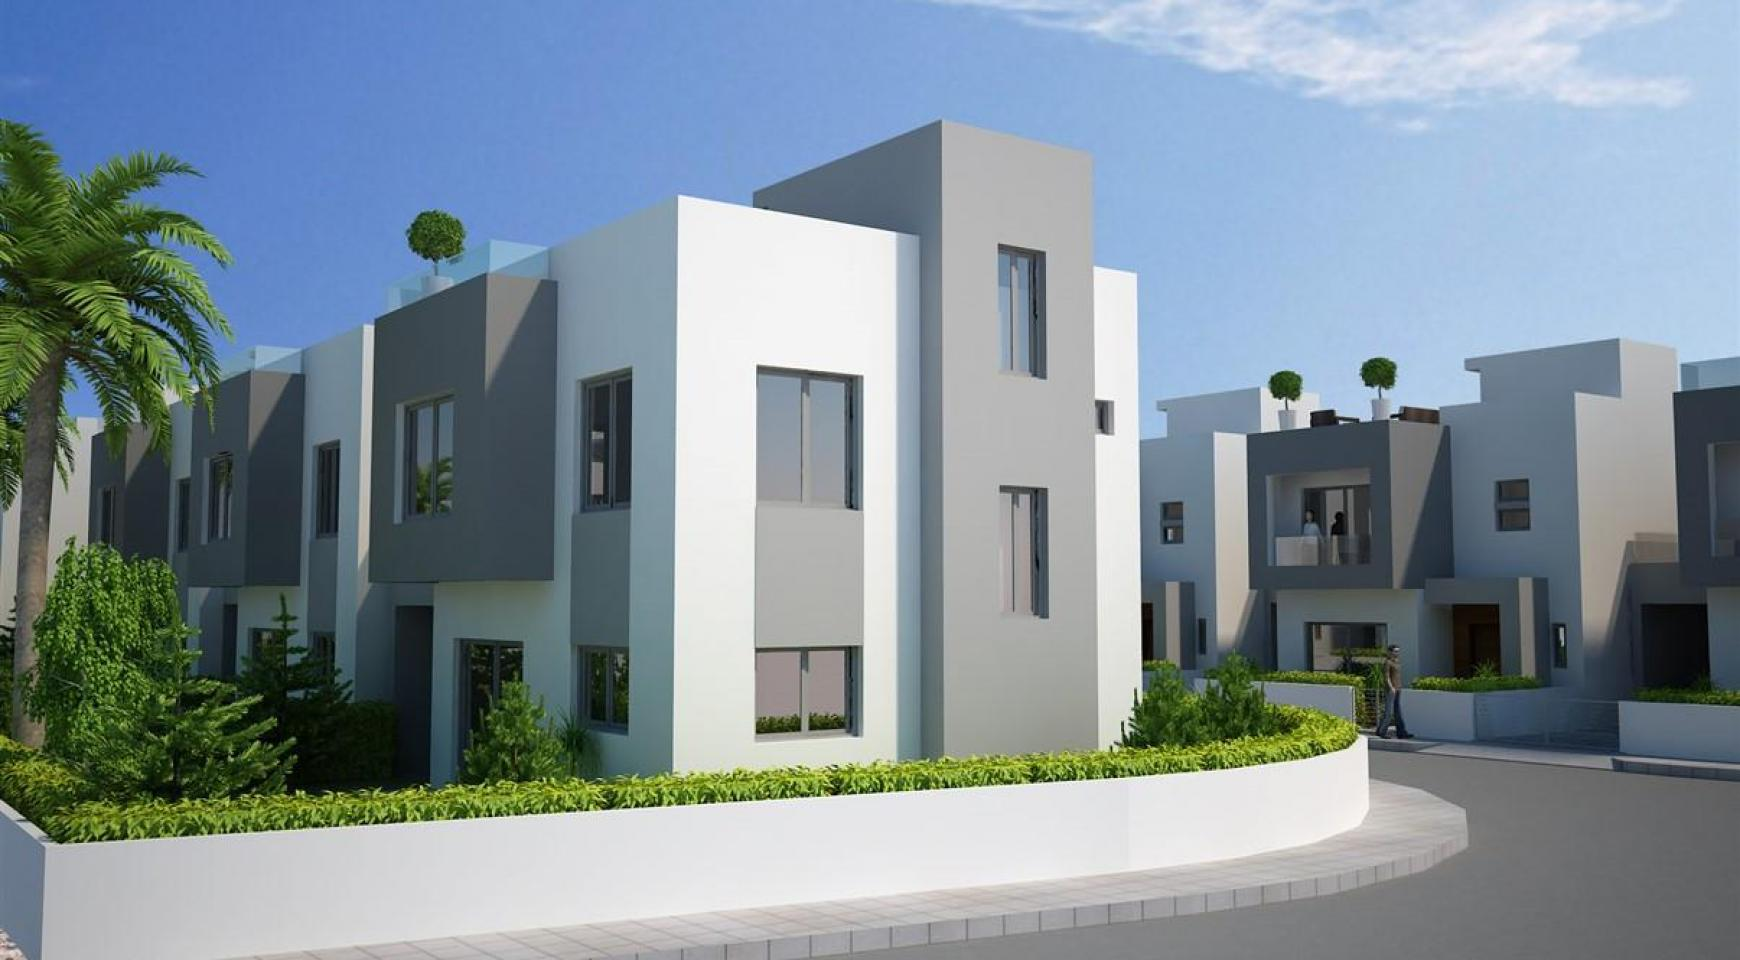 3 Bedroom Villa in a New Project - 31